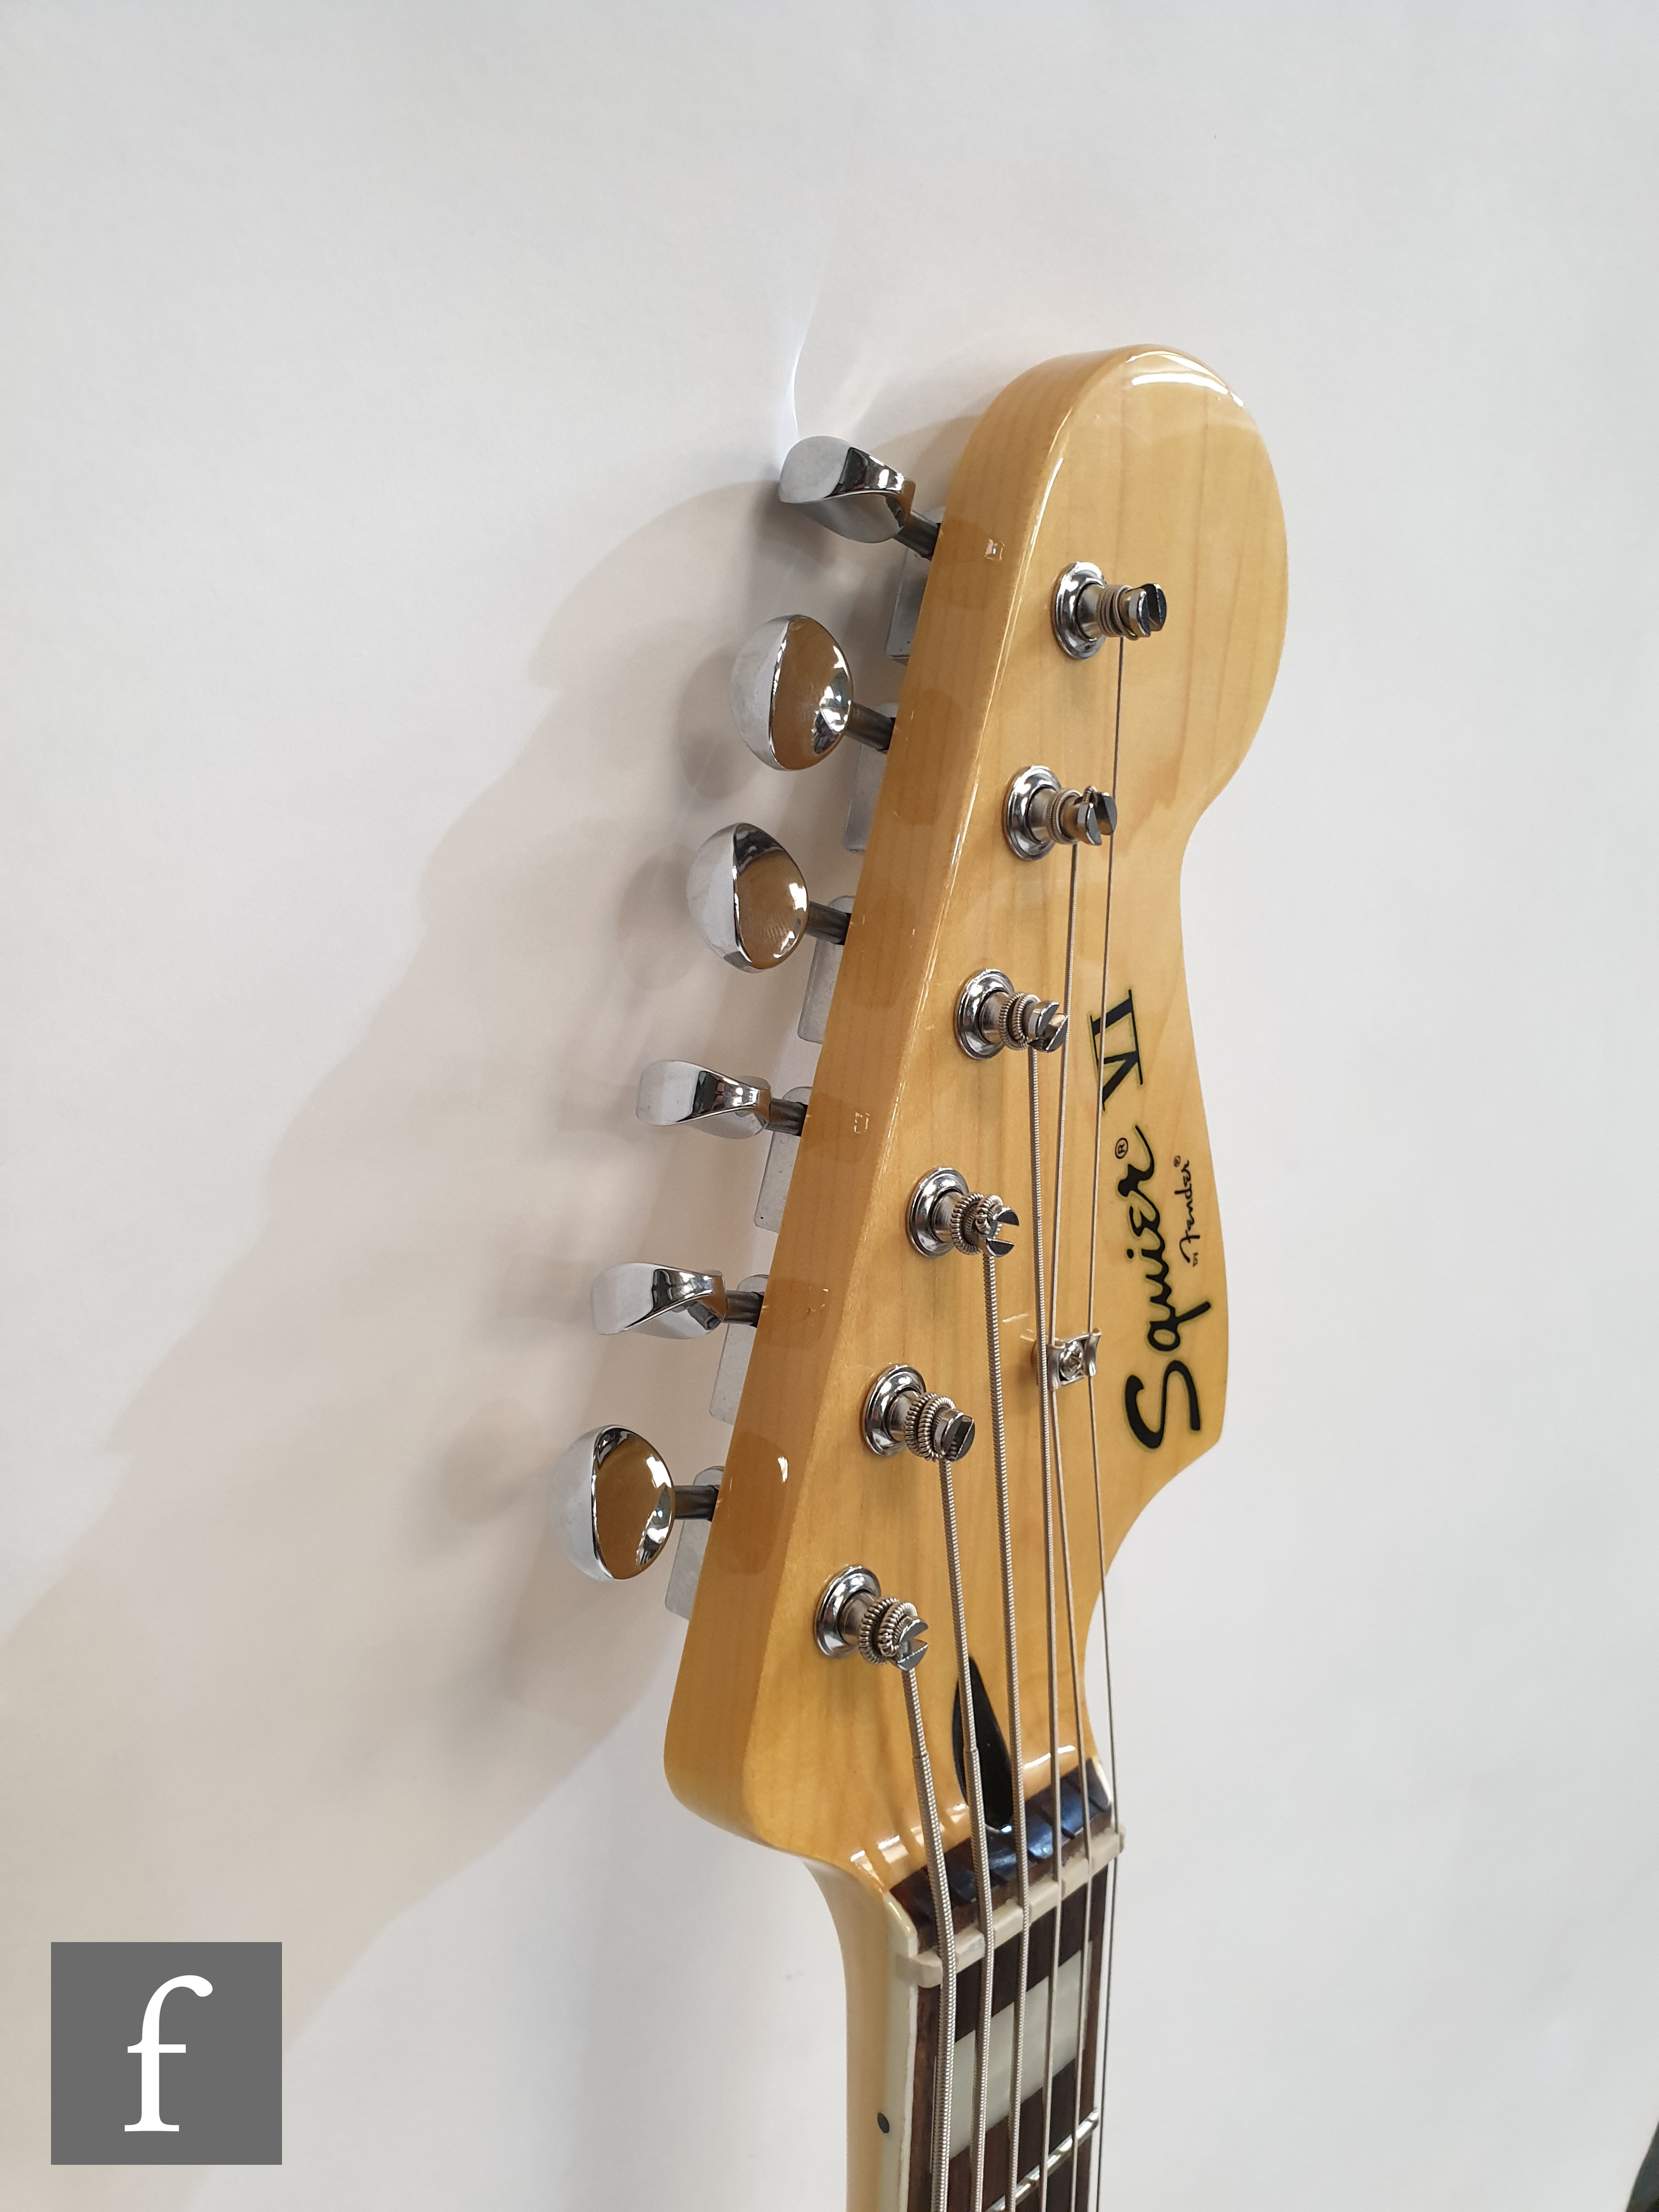 A Squire VI by Fender electric guitar, serial number 15208800, made in Indonesia, sunburst finish, - Image 3 of 4